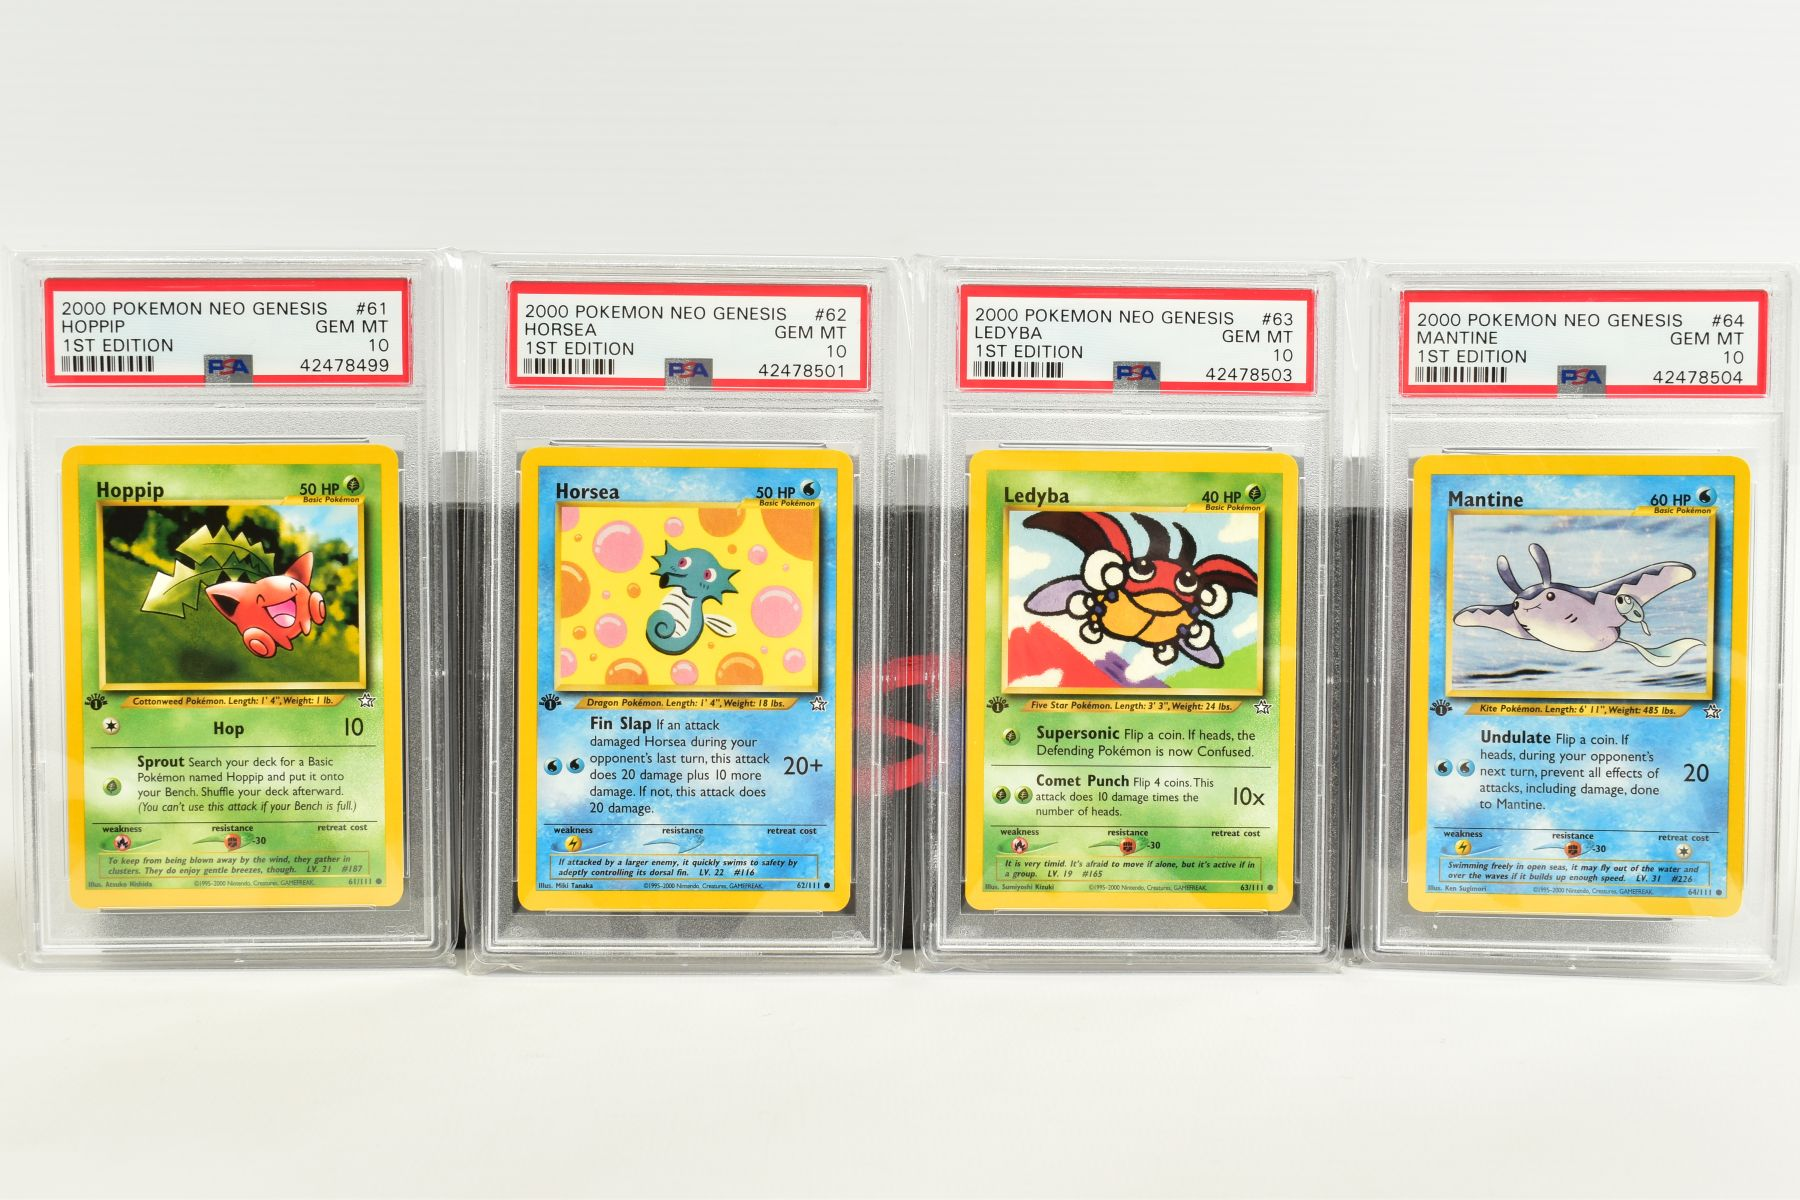 A QUANTITY OF PSA GRADED POKEMON 1ST EDITION NEO GENESIS SET CARDS, all are graded GEM MINT 10 and - Image 12 of 24